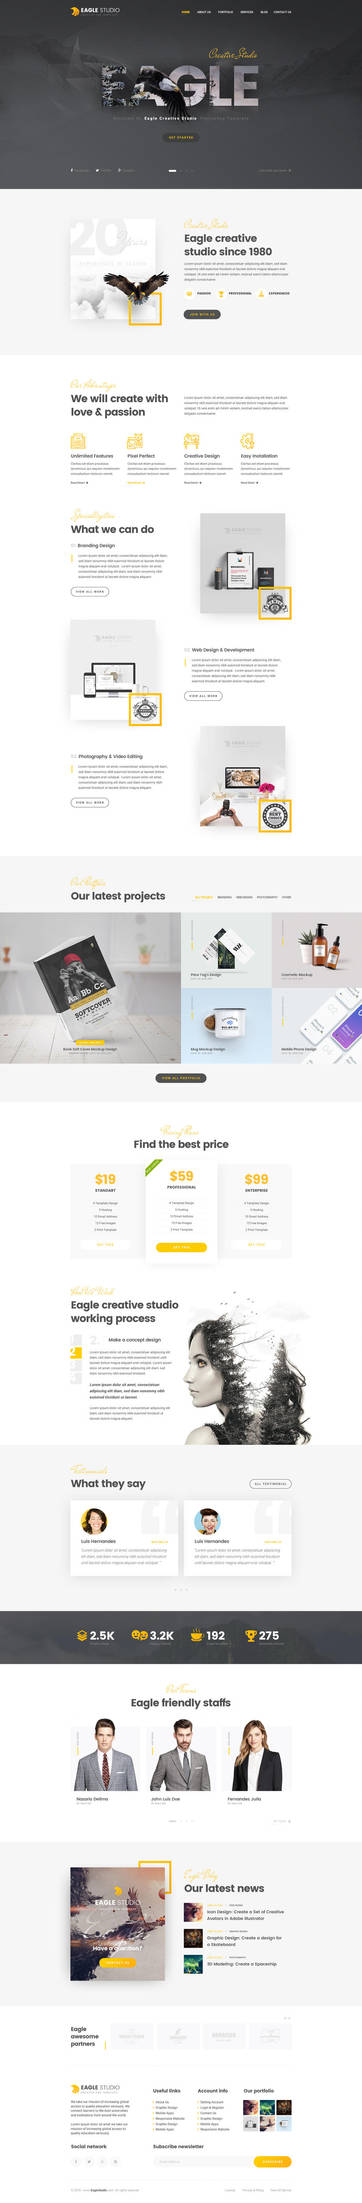 Eagle Studio - Creative PSD Template by youwes